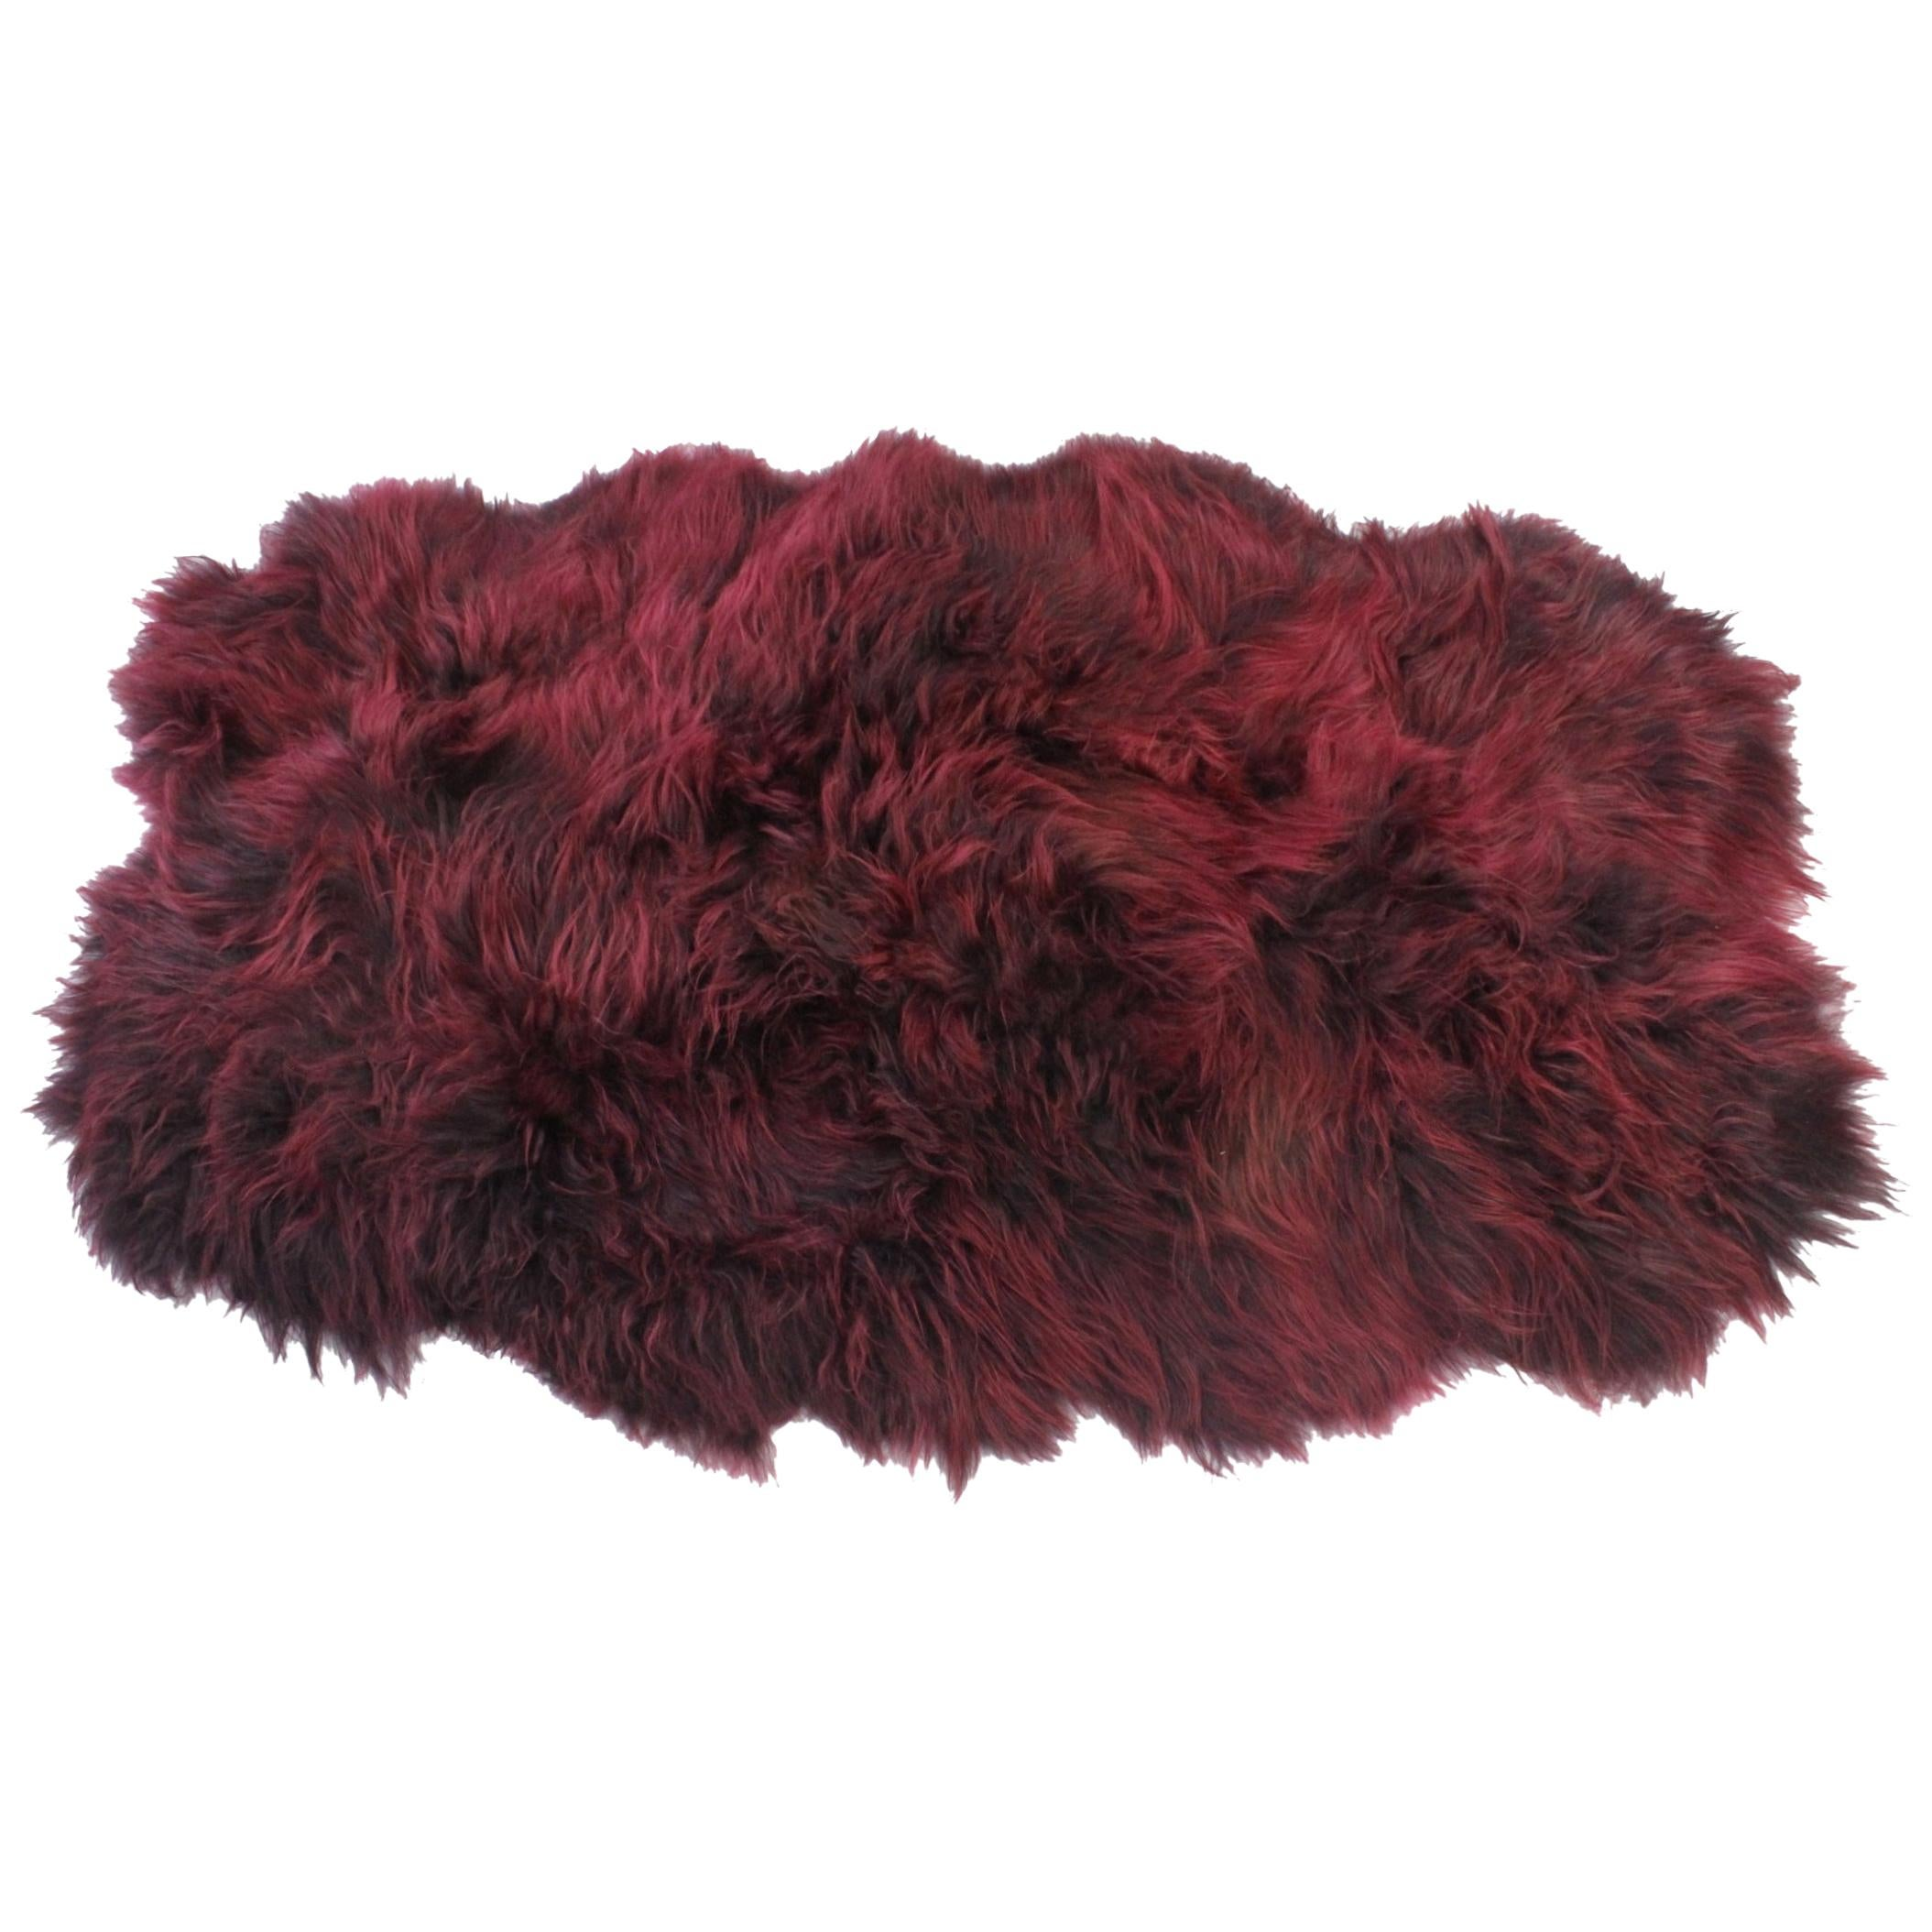 Bordeaux Red Shaggy Rug  Icelandic Sheepskin Rug - Quad